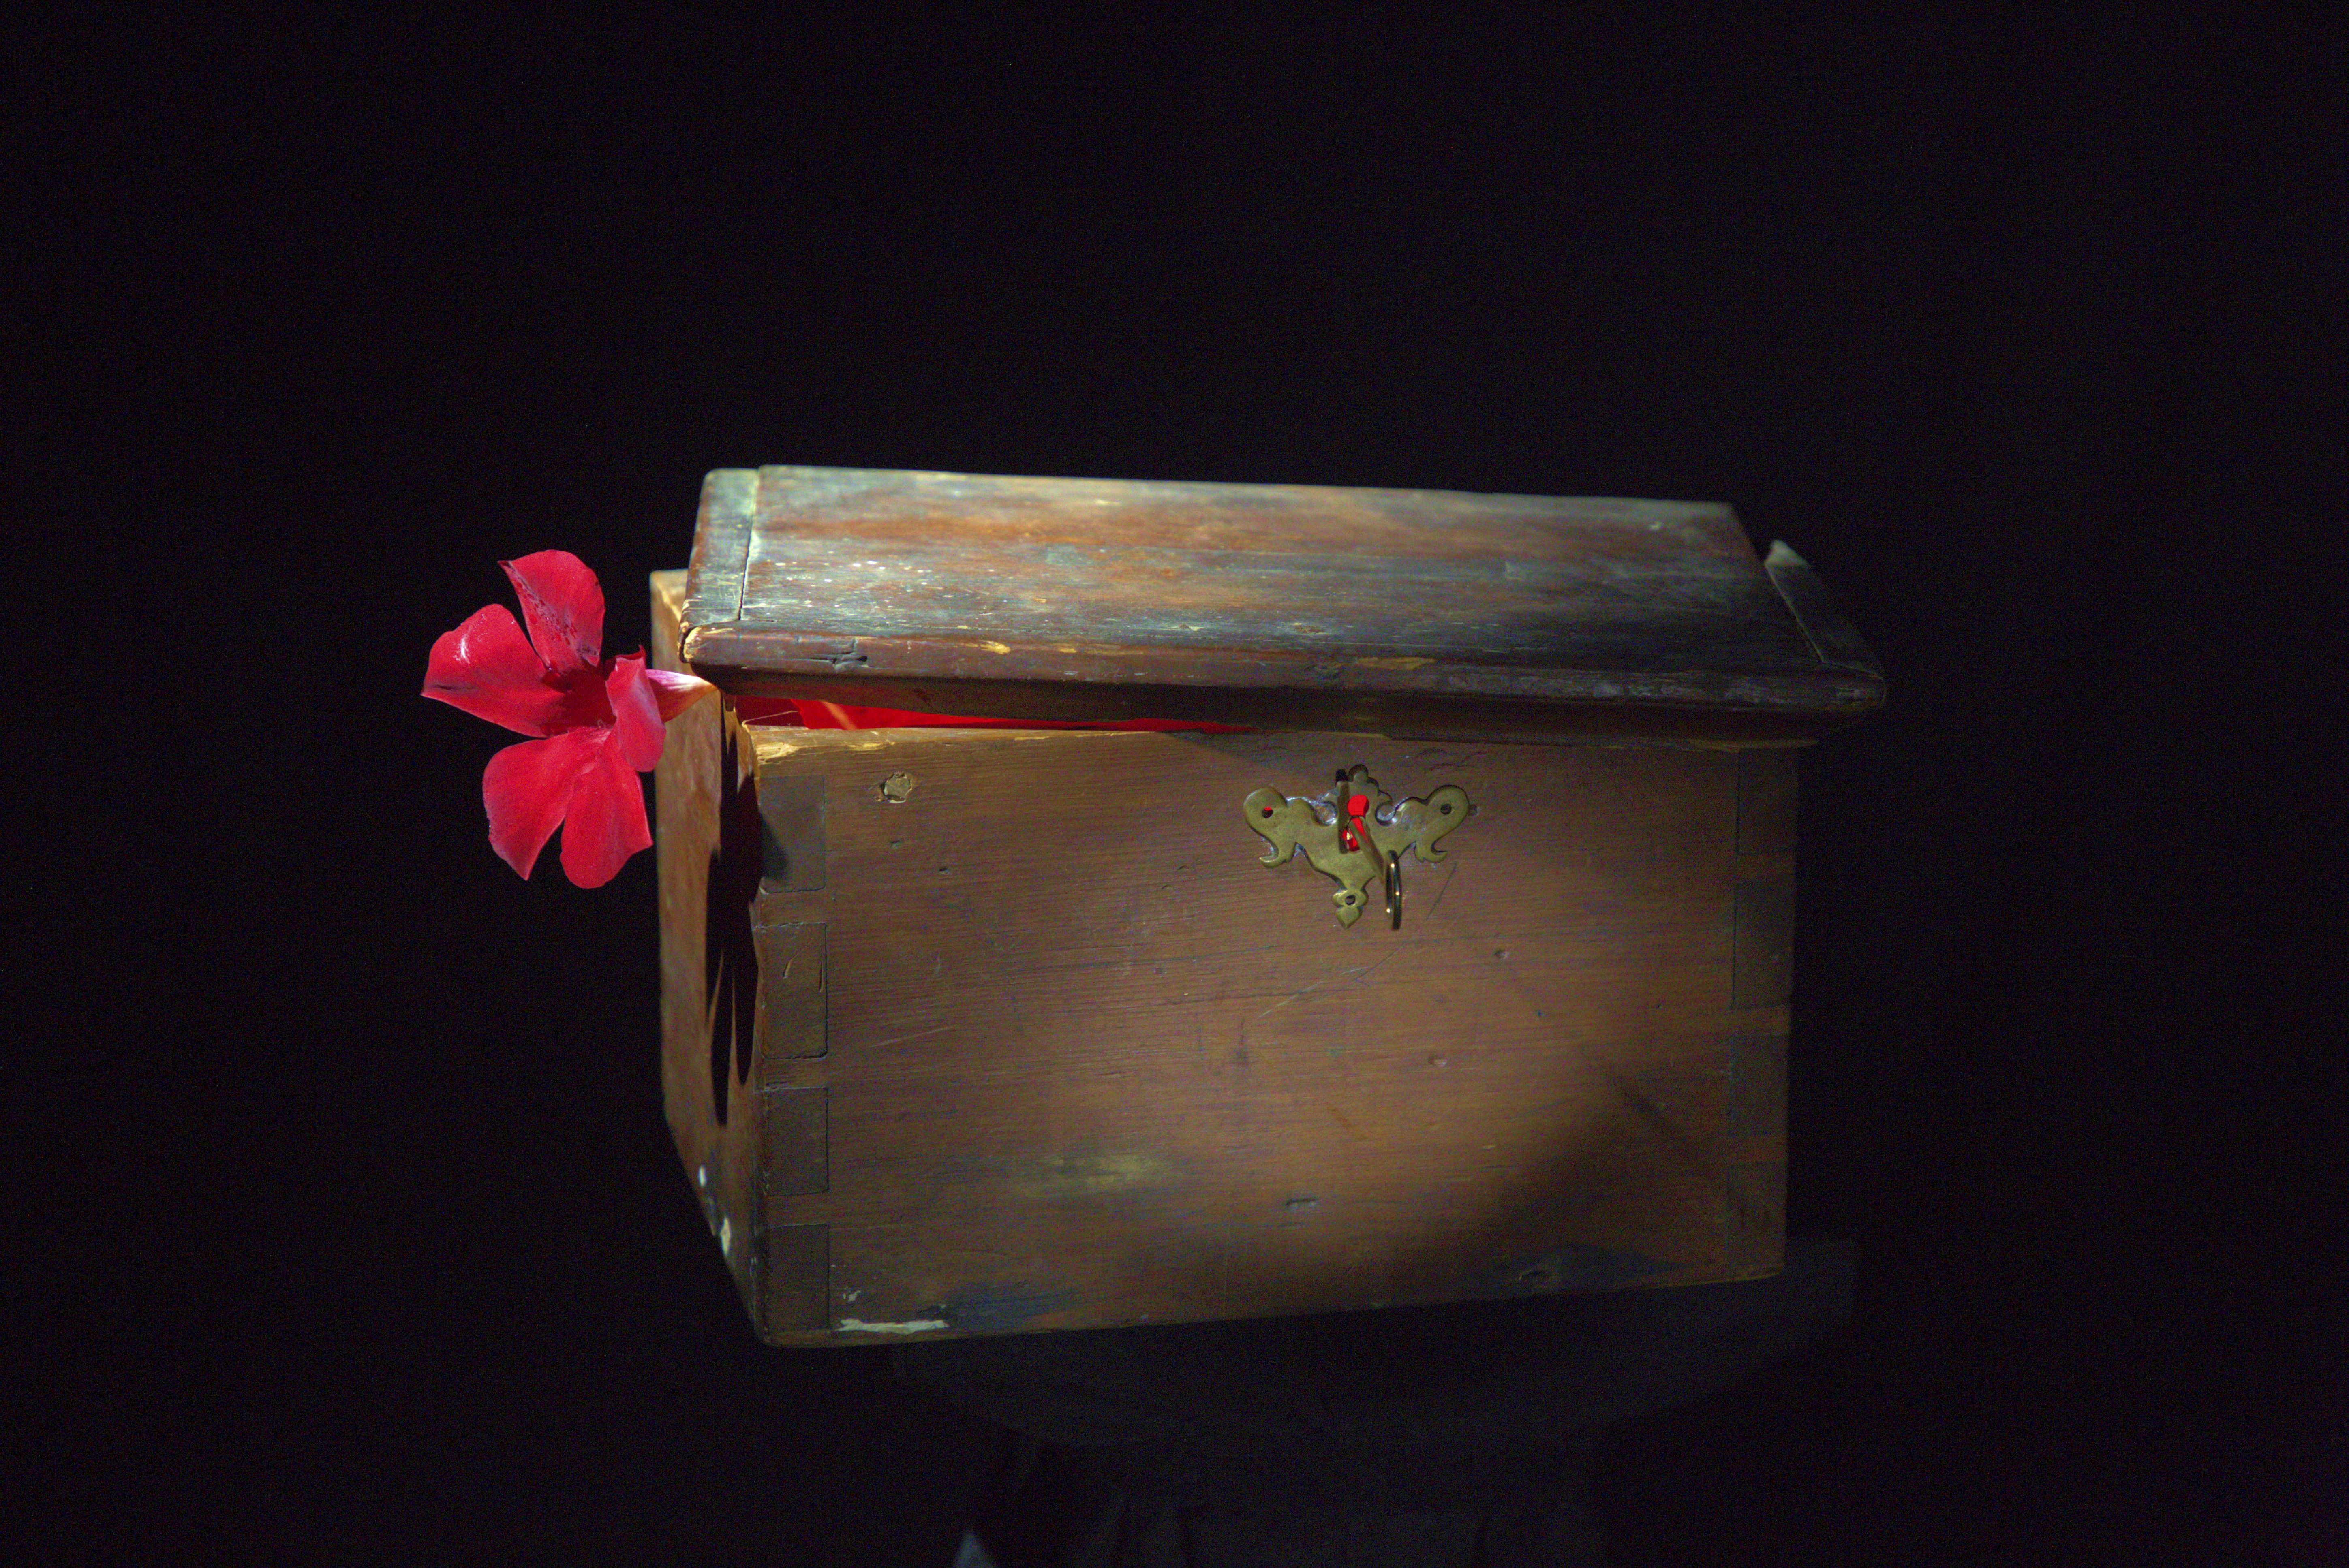 The Old Wooden Box